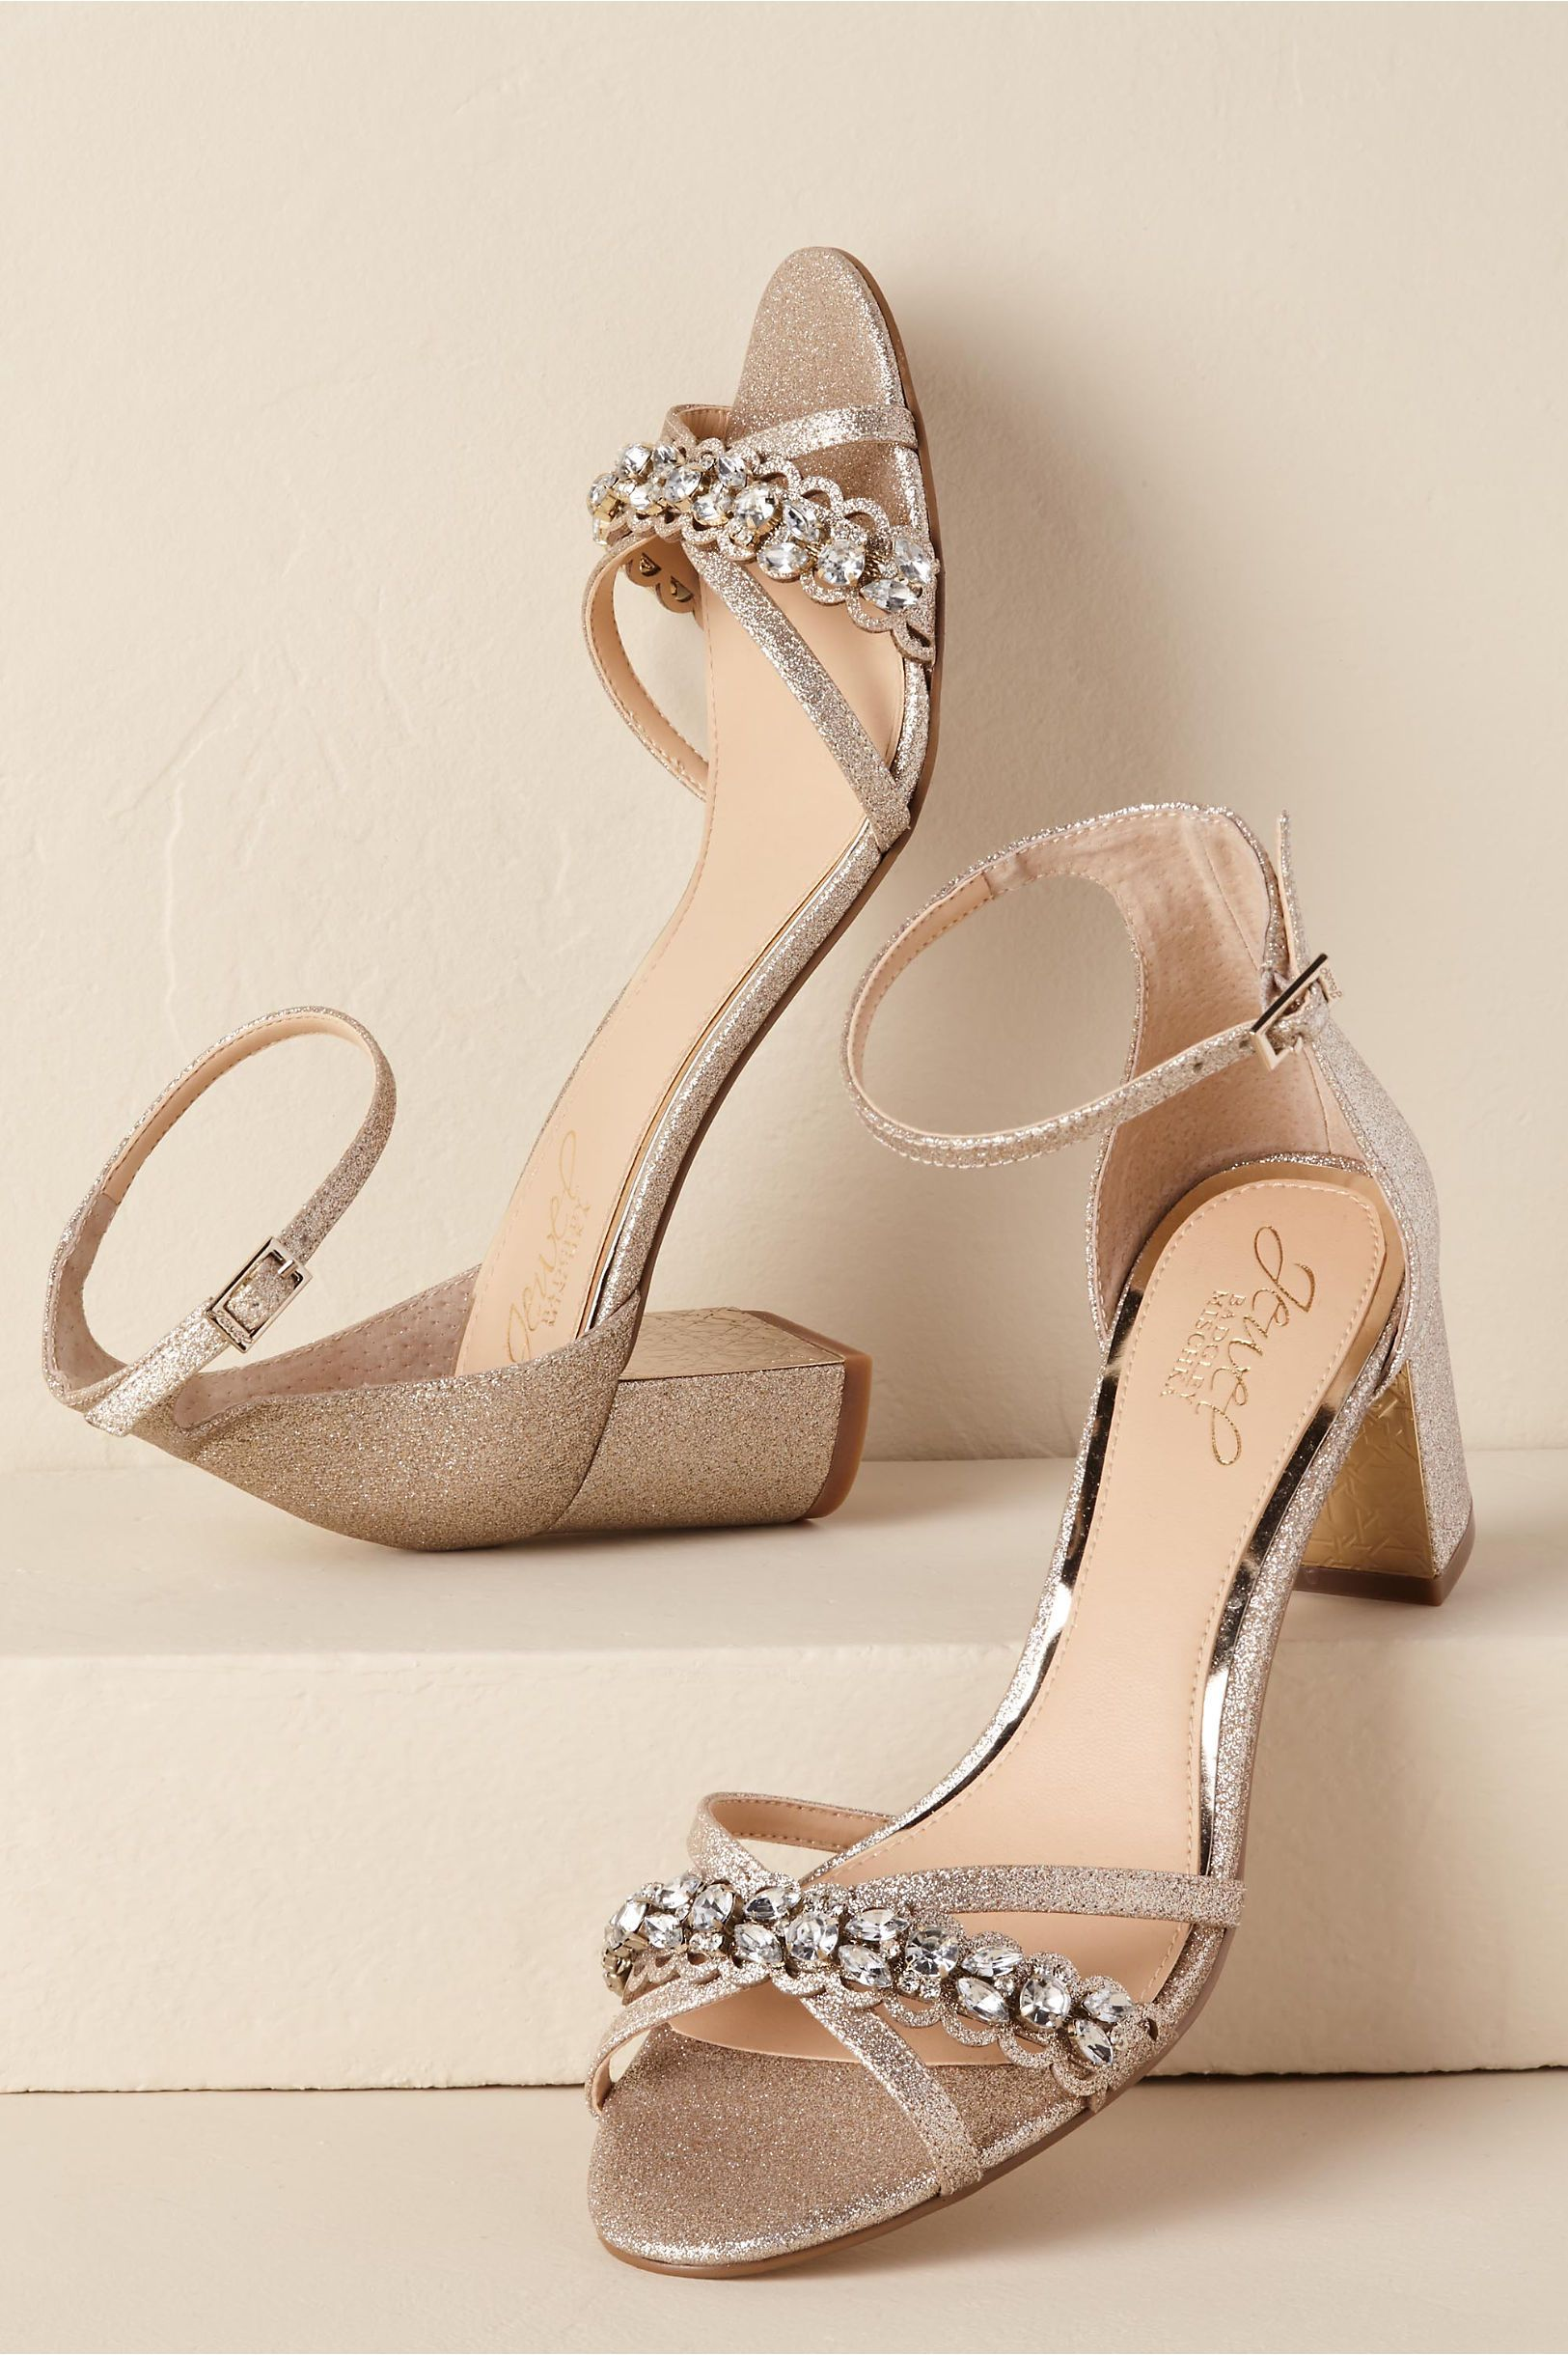 666798acb8ab BHLDN s Badgley Mischka Giona Block Heels in Gold. BHLDN s Badgley Mischka  Giona Block Heels in Gold Gold Block Heel Shoes